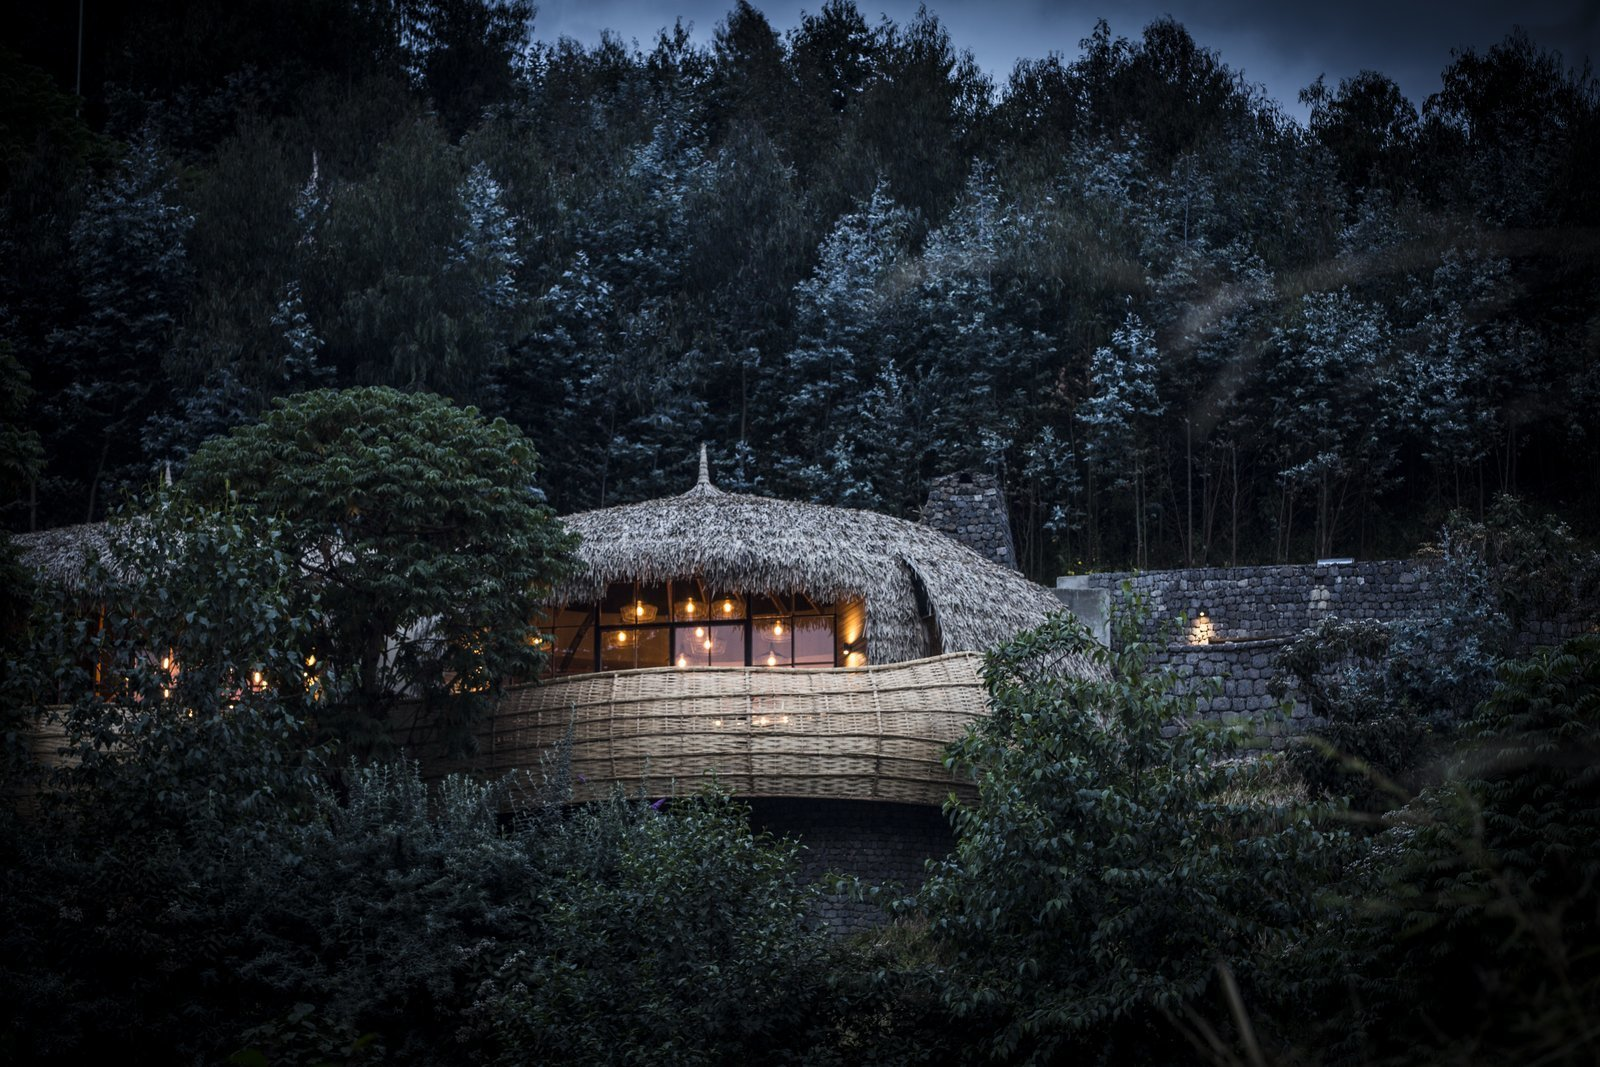 The forest villas were designed by South African architect Nick Plewman. Take an Eco-Escape to a Spherical Forest Villa in an Eroded Volcanic Cone in Rwanda - Photo 2 of 11